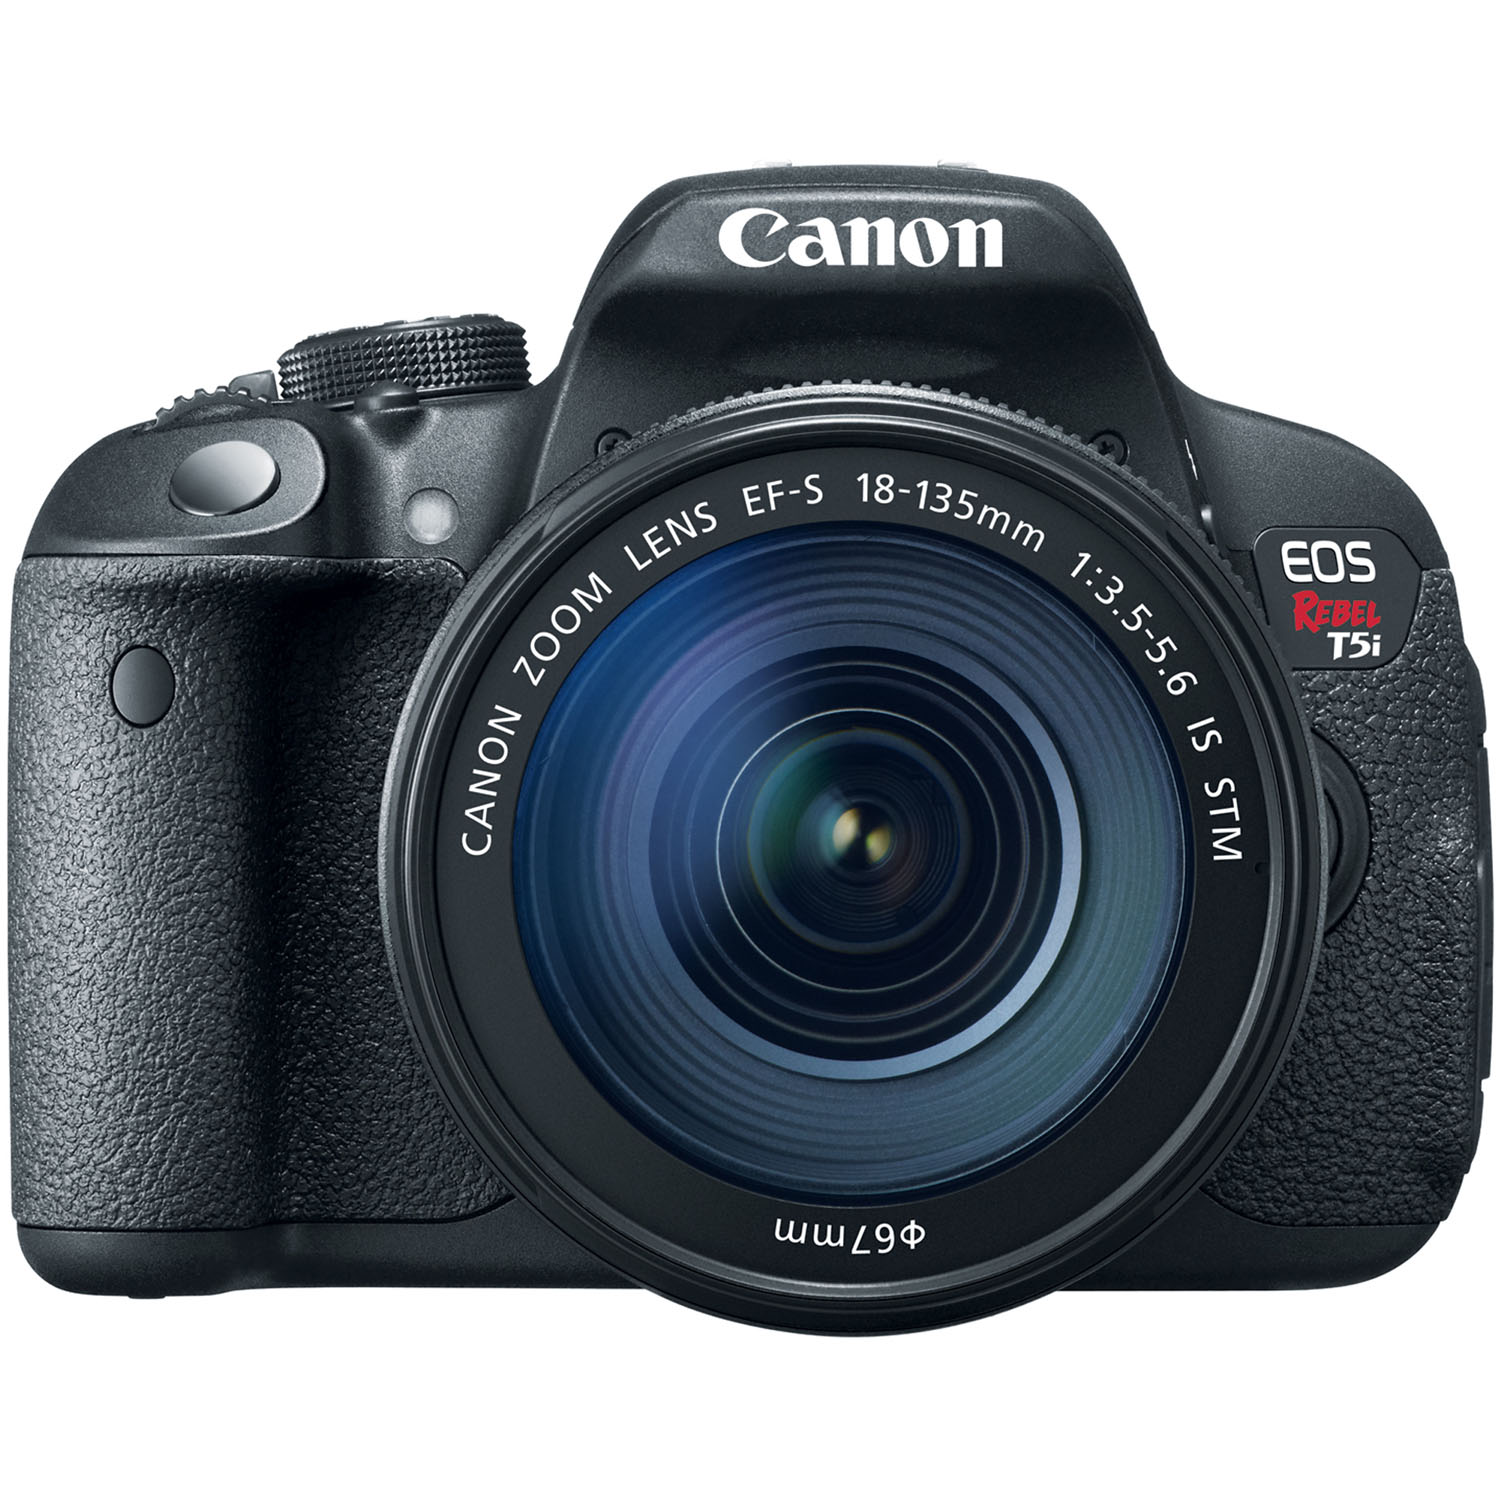 Canon EOS Rebel T5i 18MP Digital SLR Camera Body and EF-S 18-135mm f/3.5-5.6 IS STM Lens Black 14.9 x 22.3mm